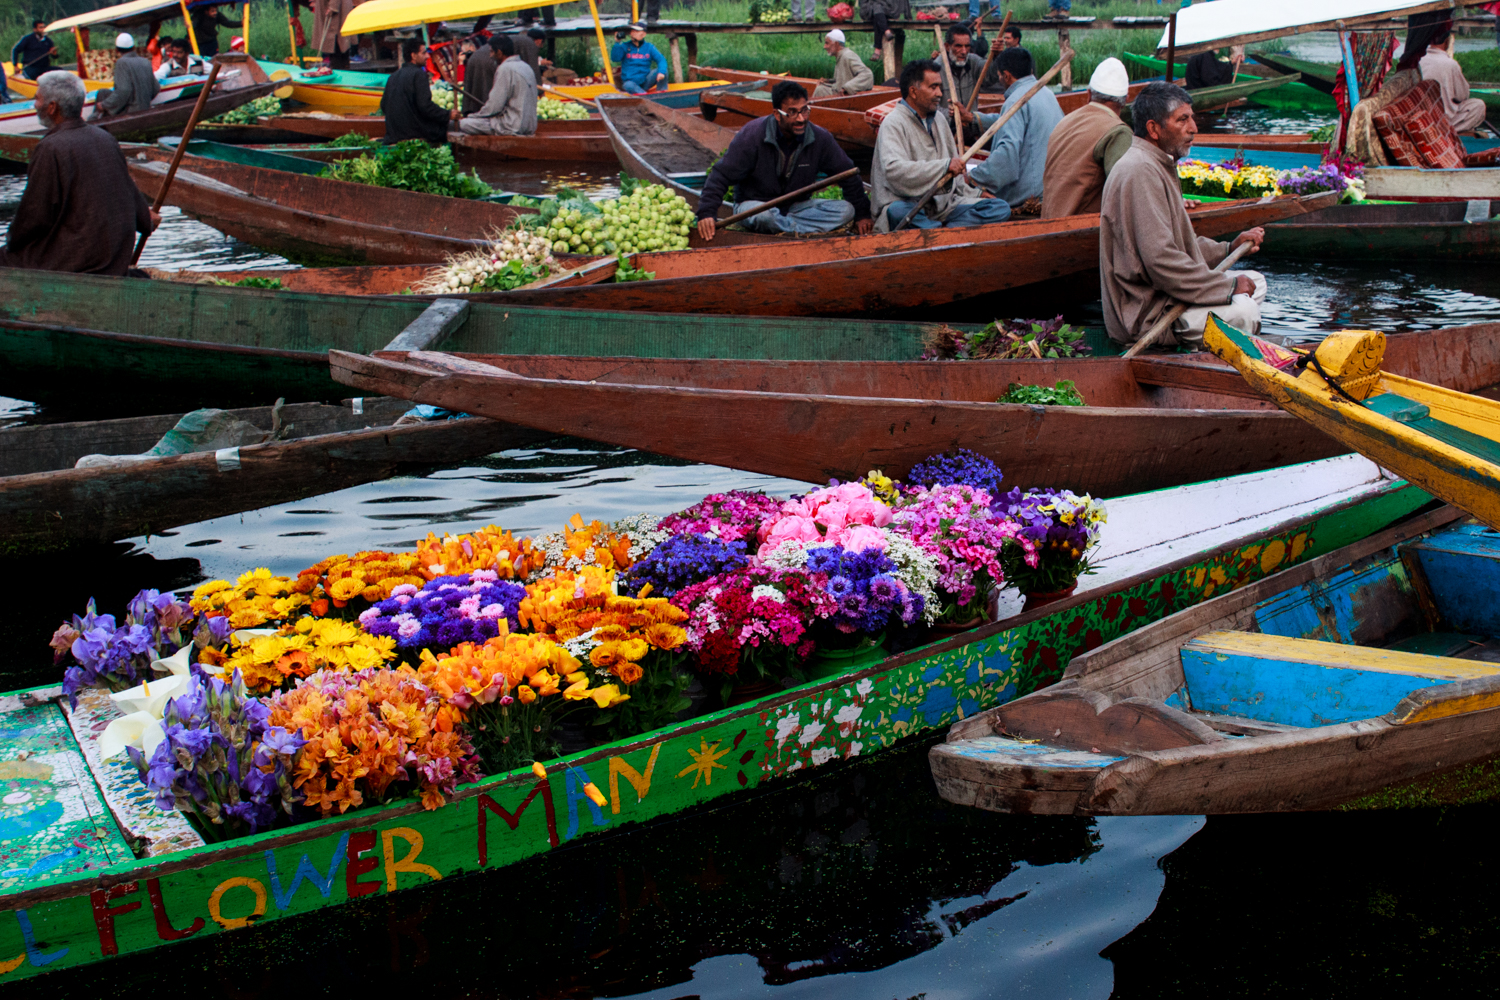 Among the vegetable sellers are the flower guys. Floriculture is a huge industry in Kashmir.